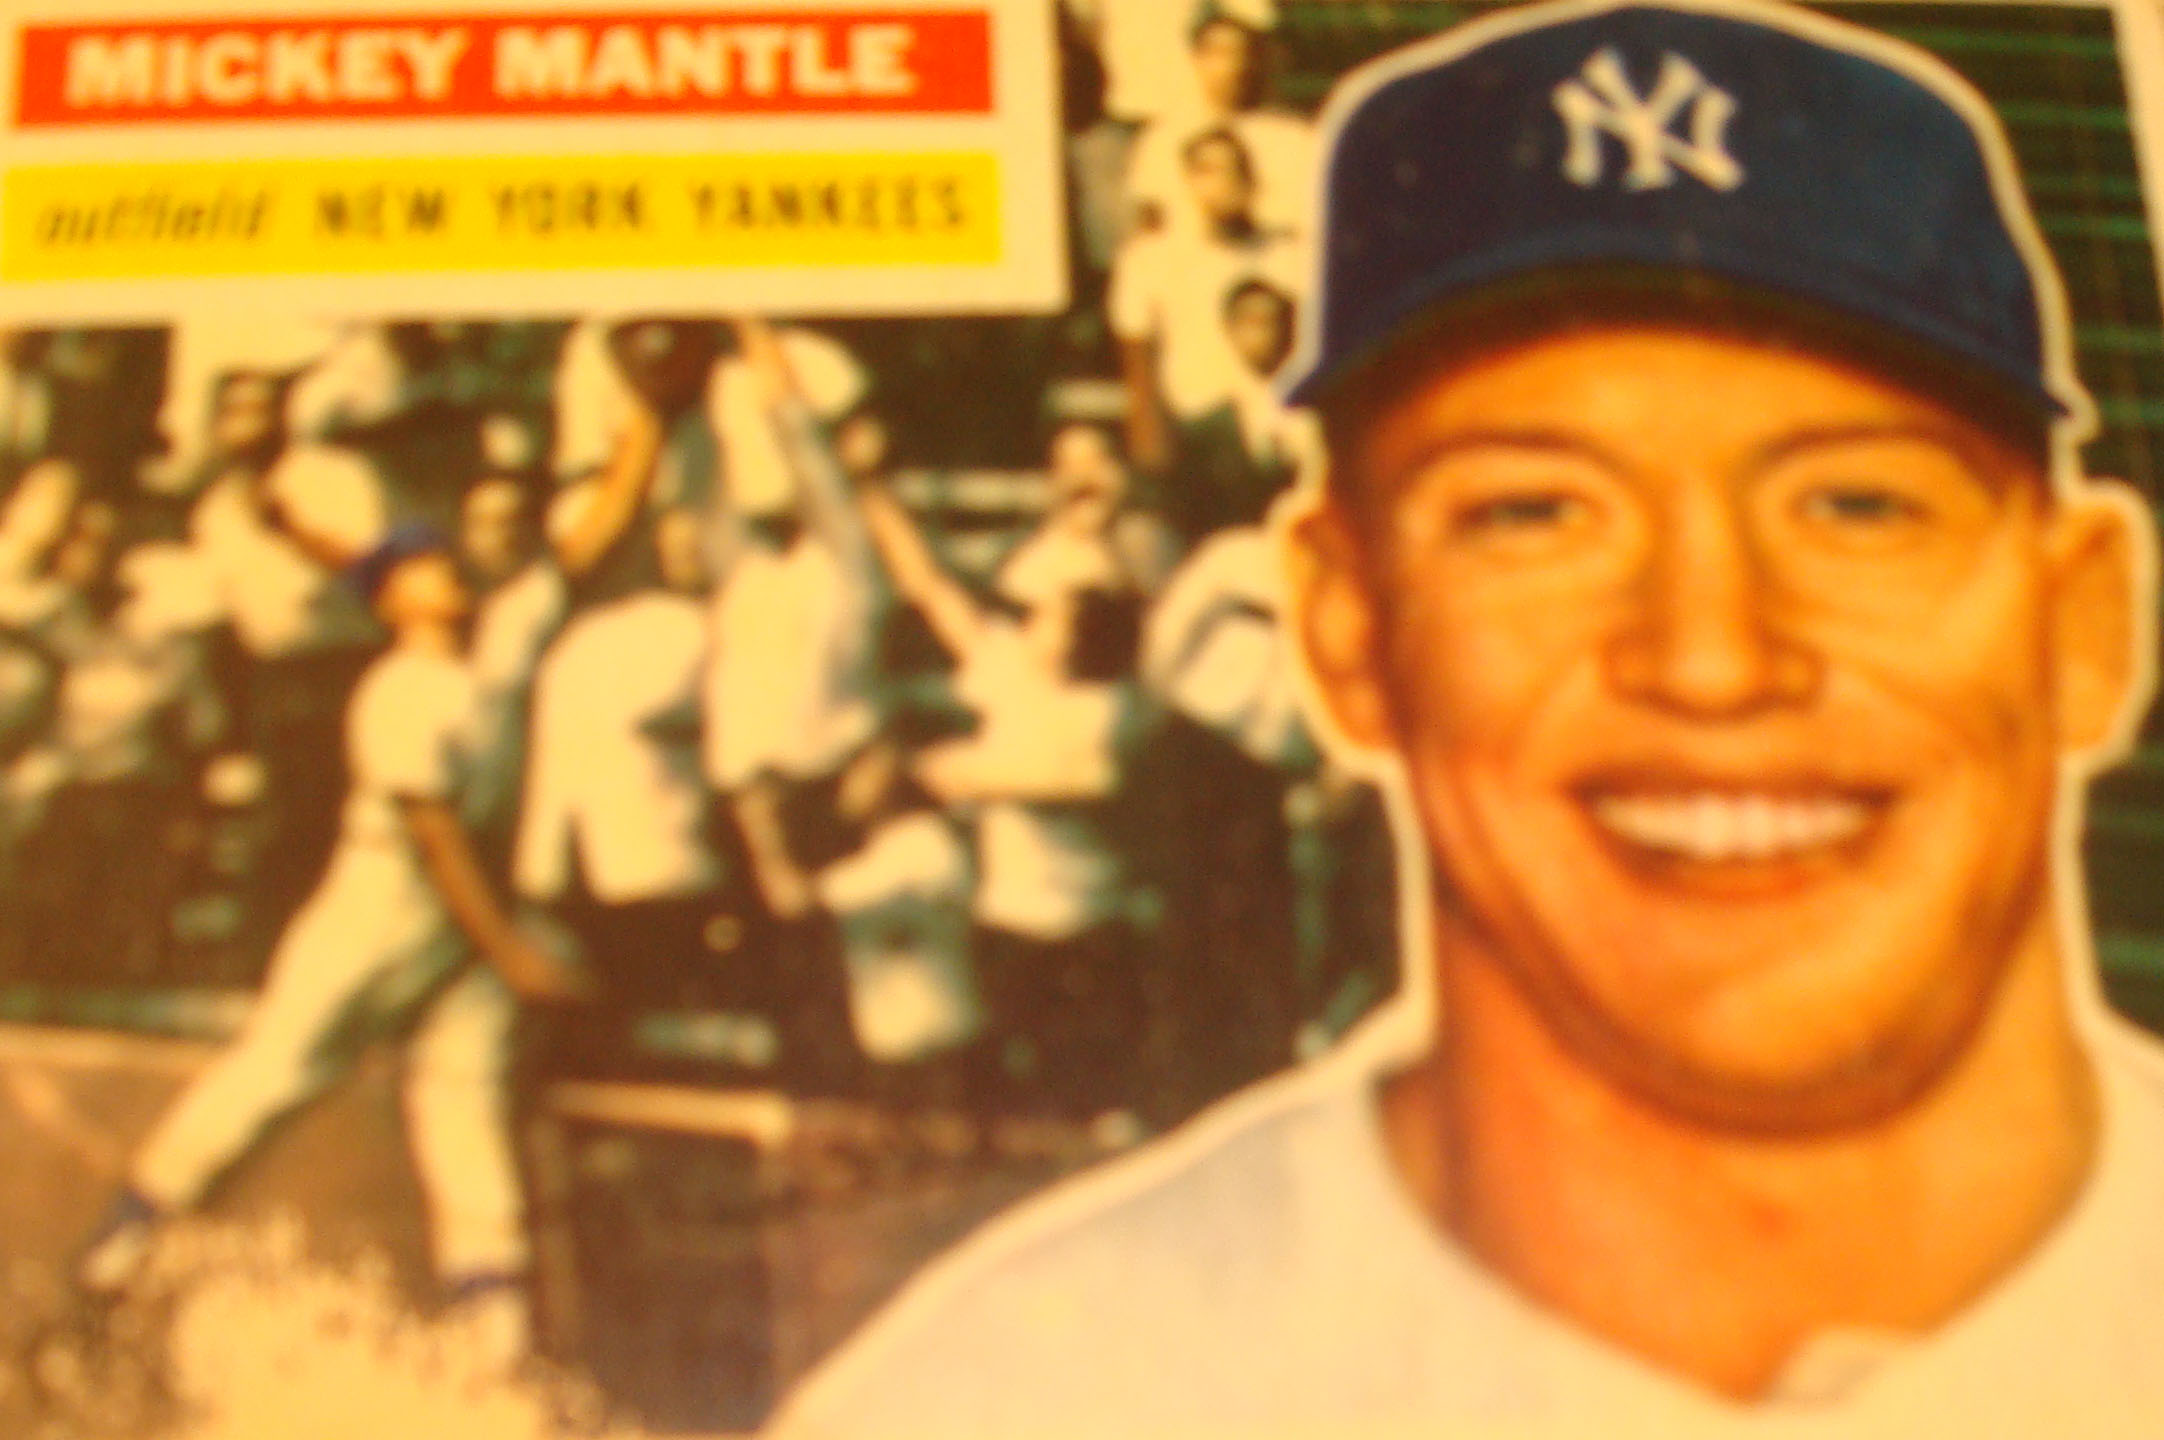 Bds 1st Mickey Mantle Card A 1956 Topps Traded For Agate